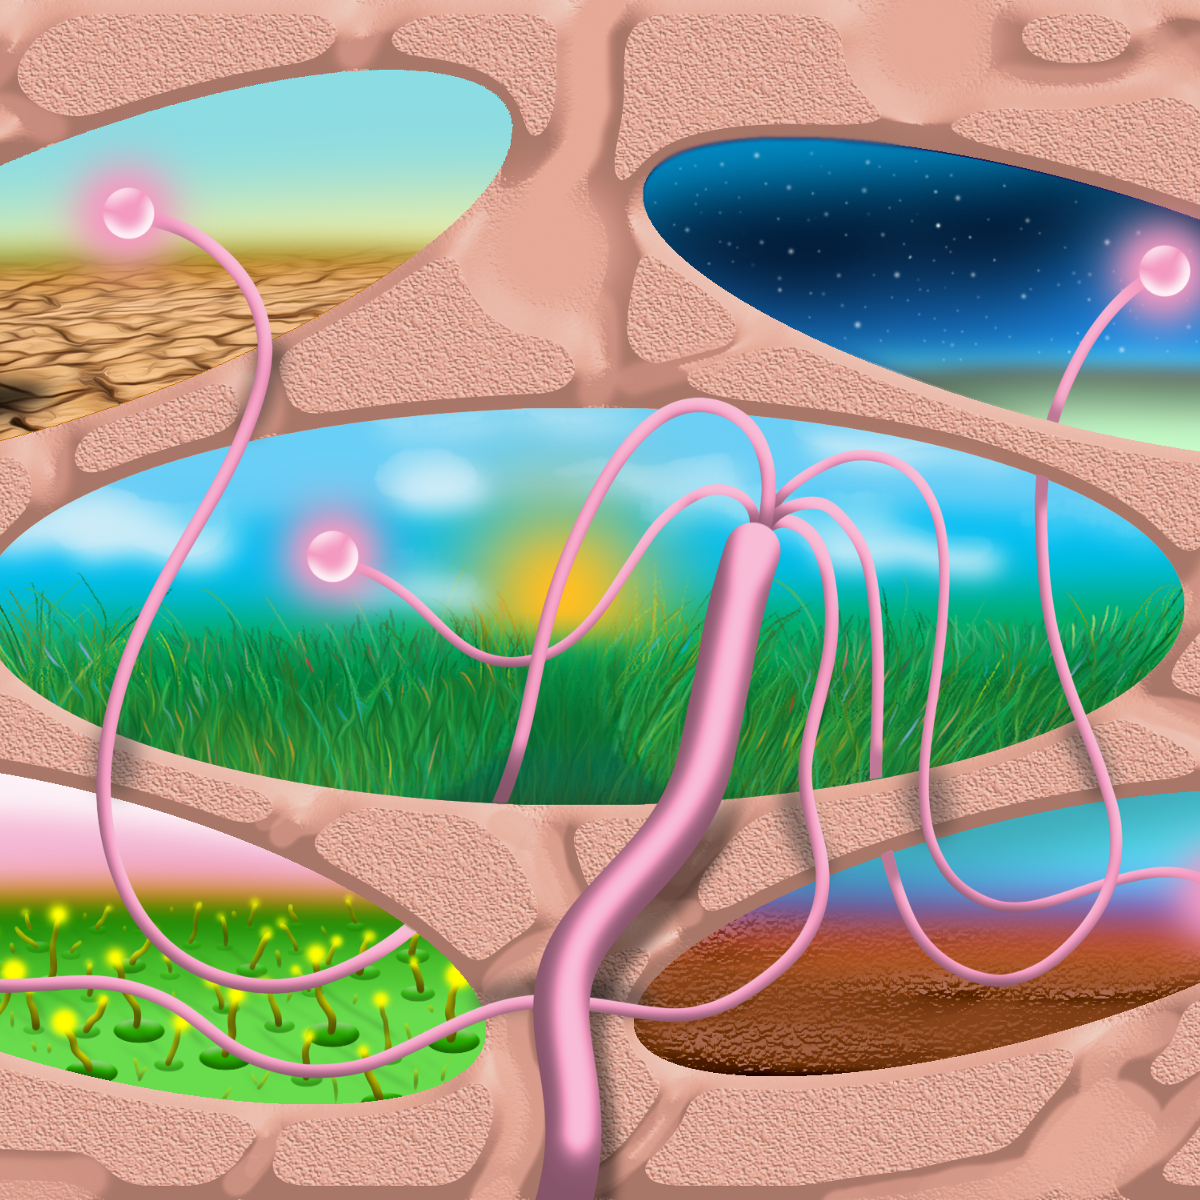 Psychedelics for Healthy People